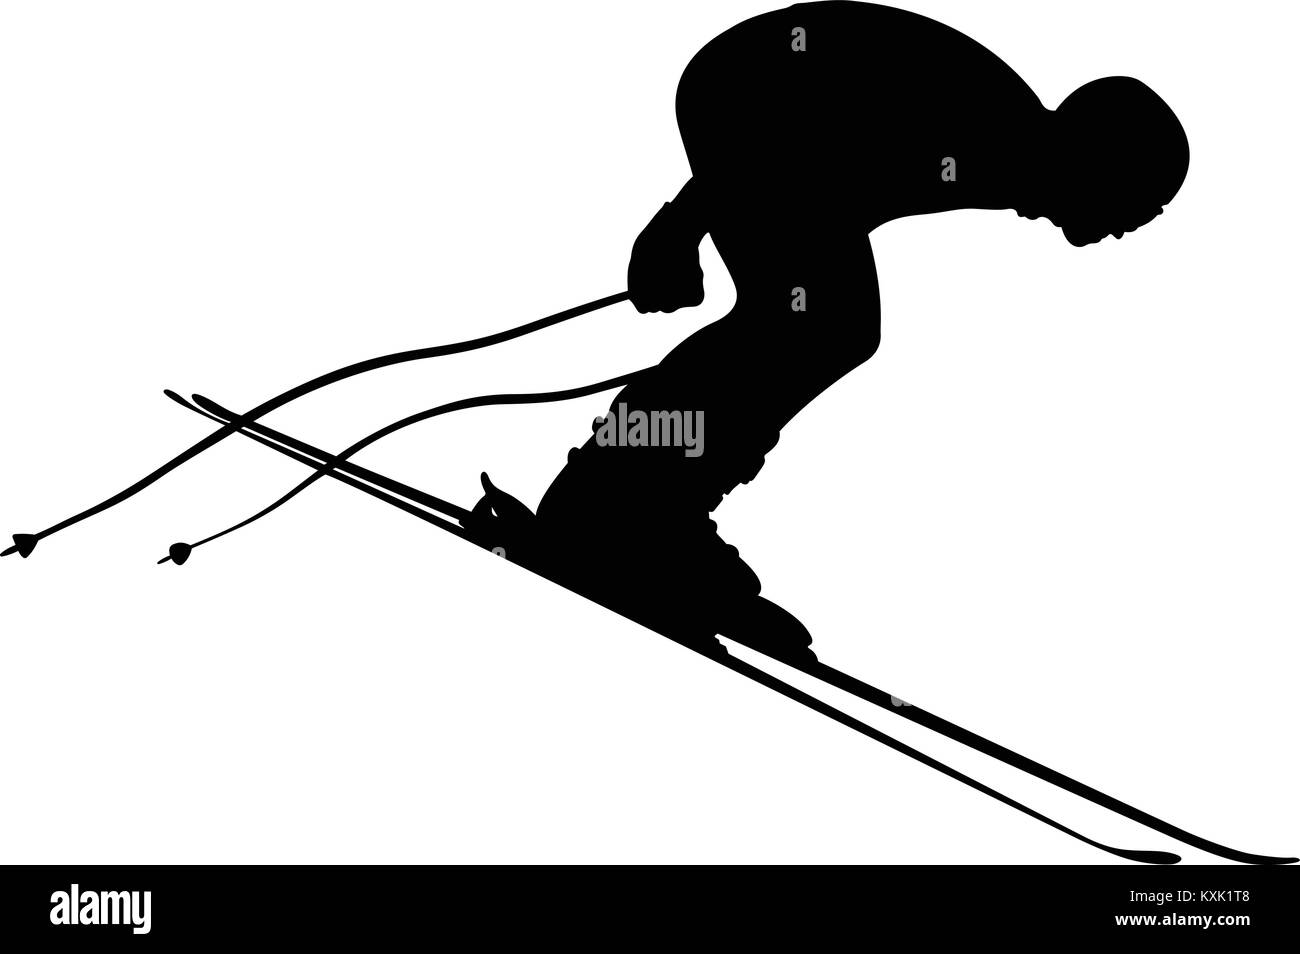 start skier athlete in competition alpine skiing Stock Vector